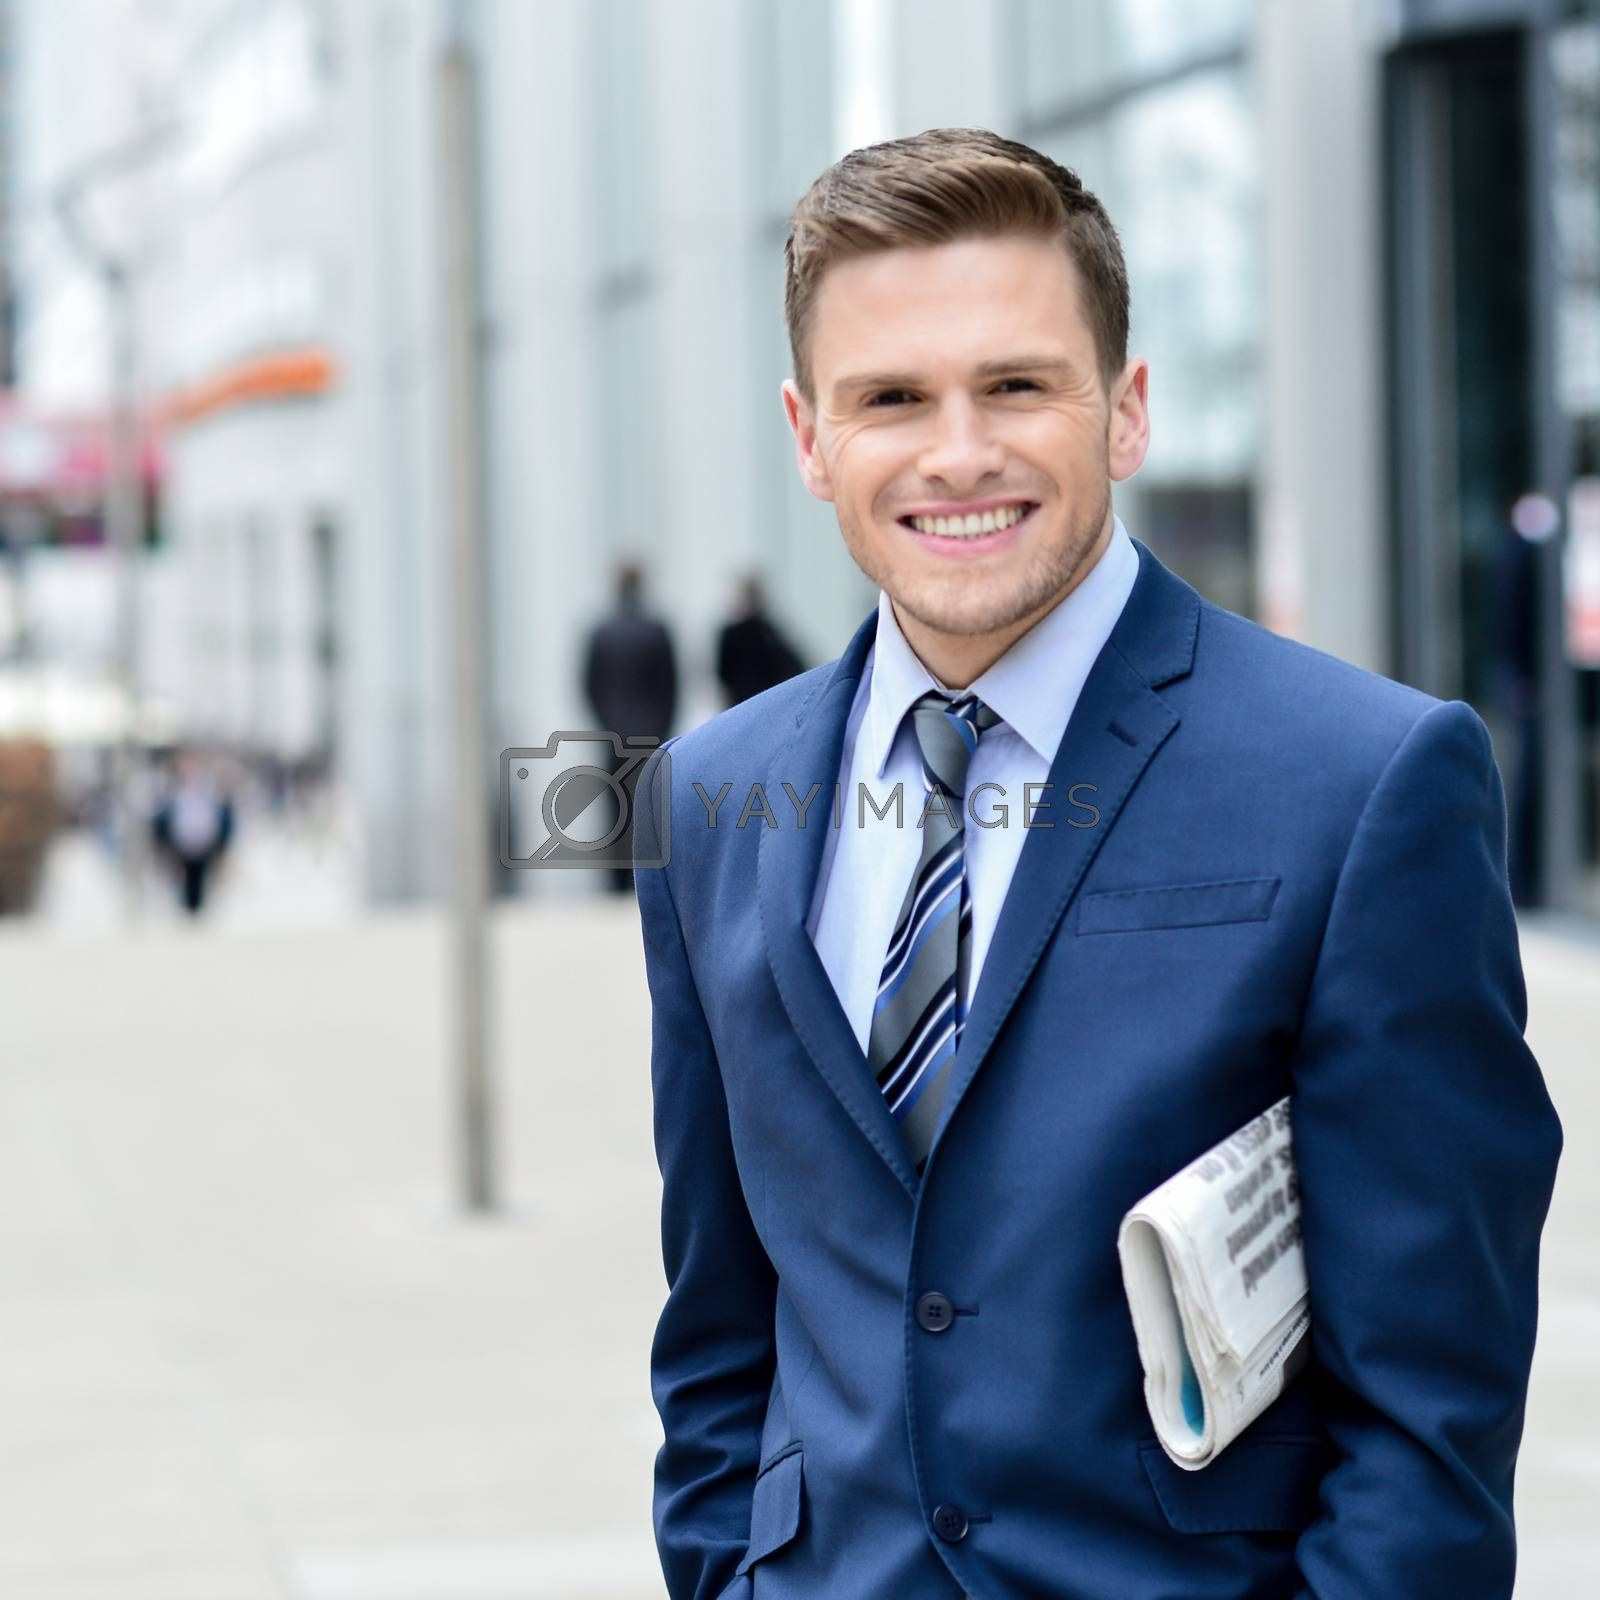 Smiling satisfied businessman holding news paper at outdoor